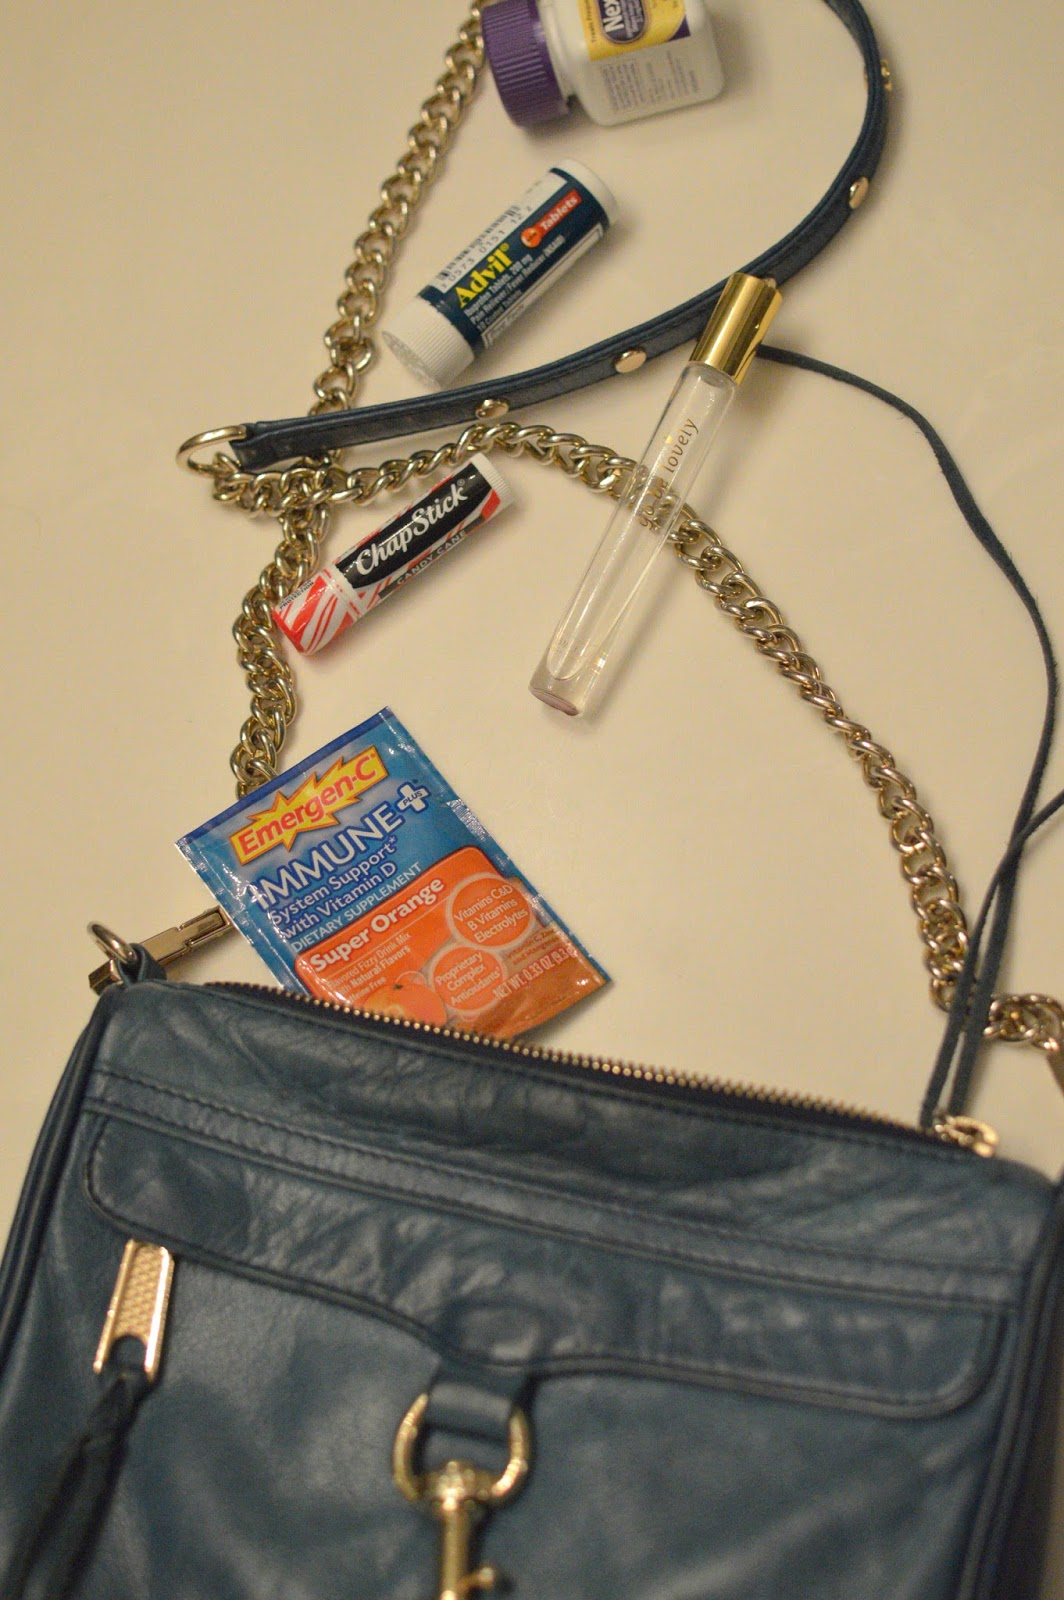 date night purse essentials